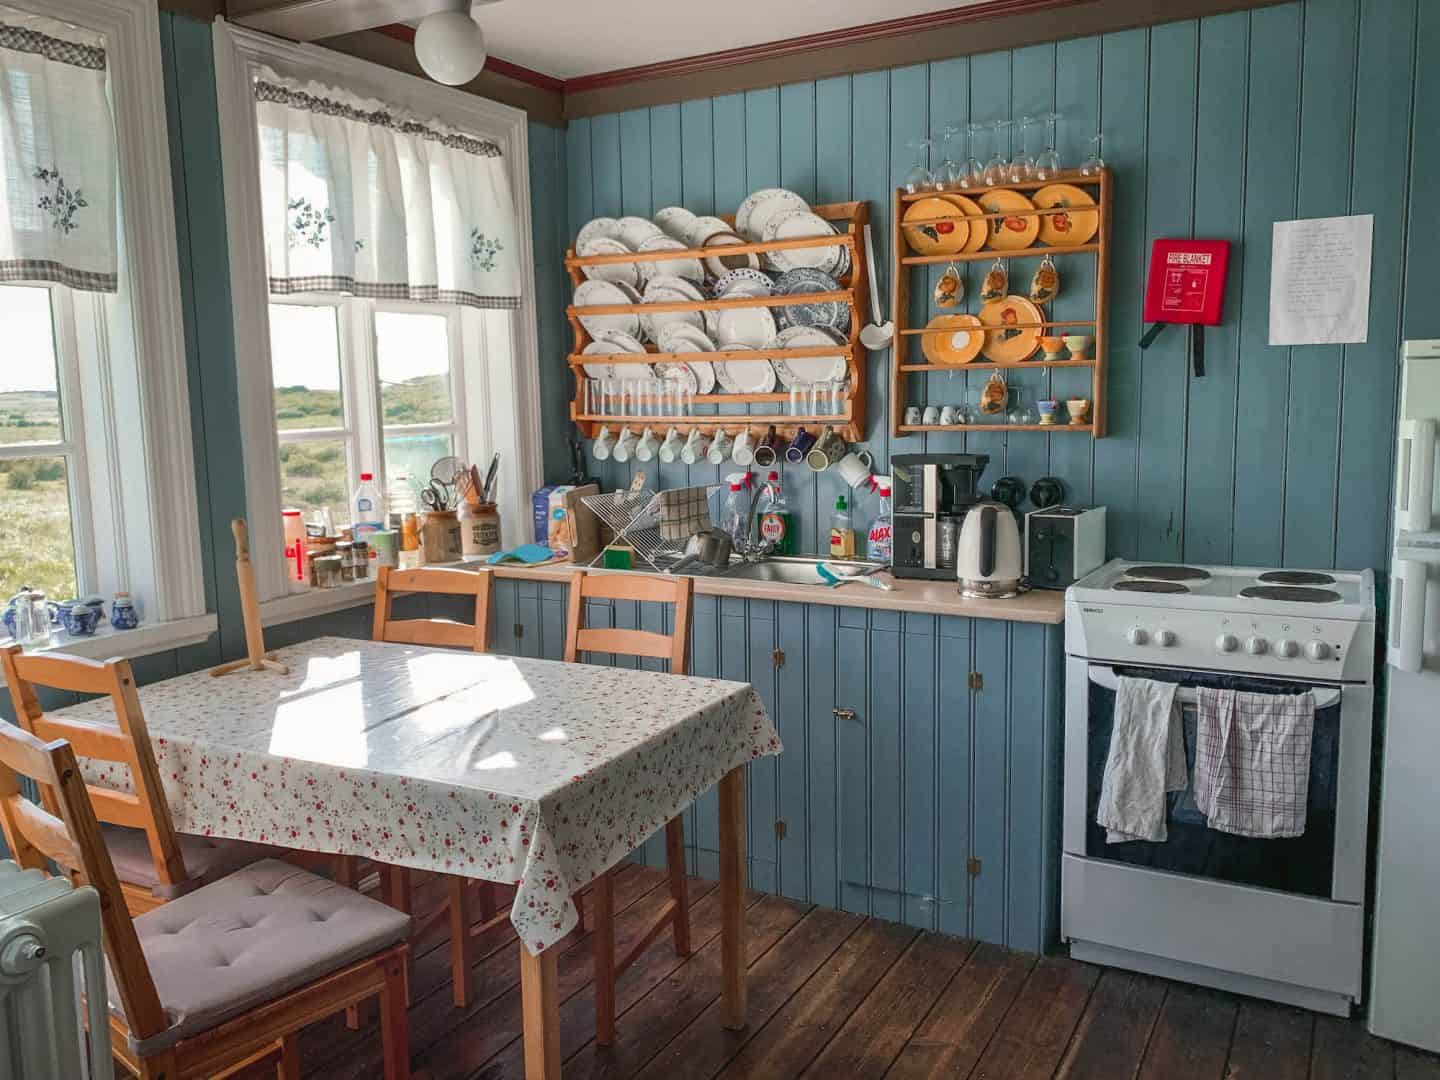 A farm-housed inspired kitchen in an Airbnb guesthouse in Iceland